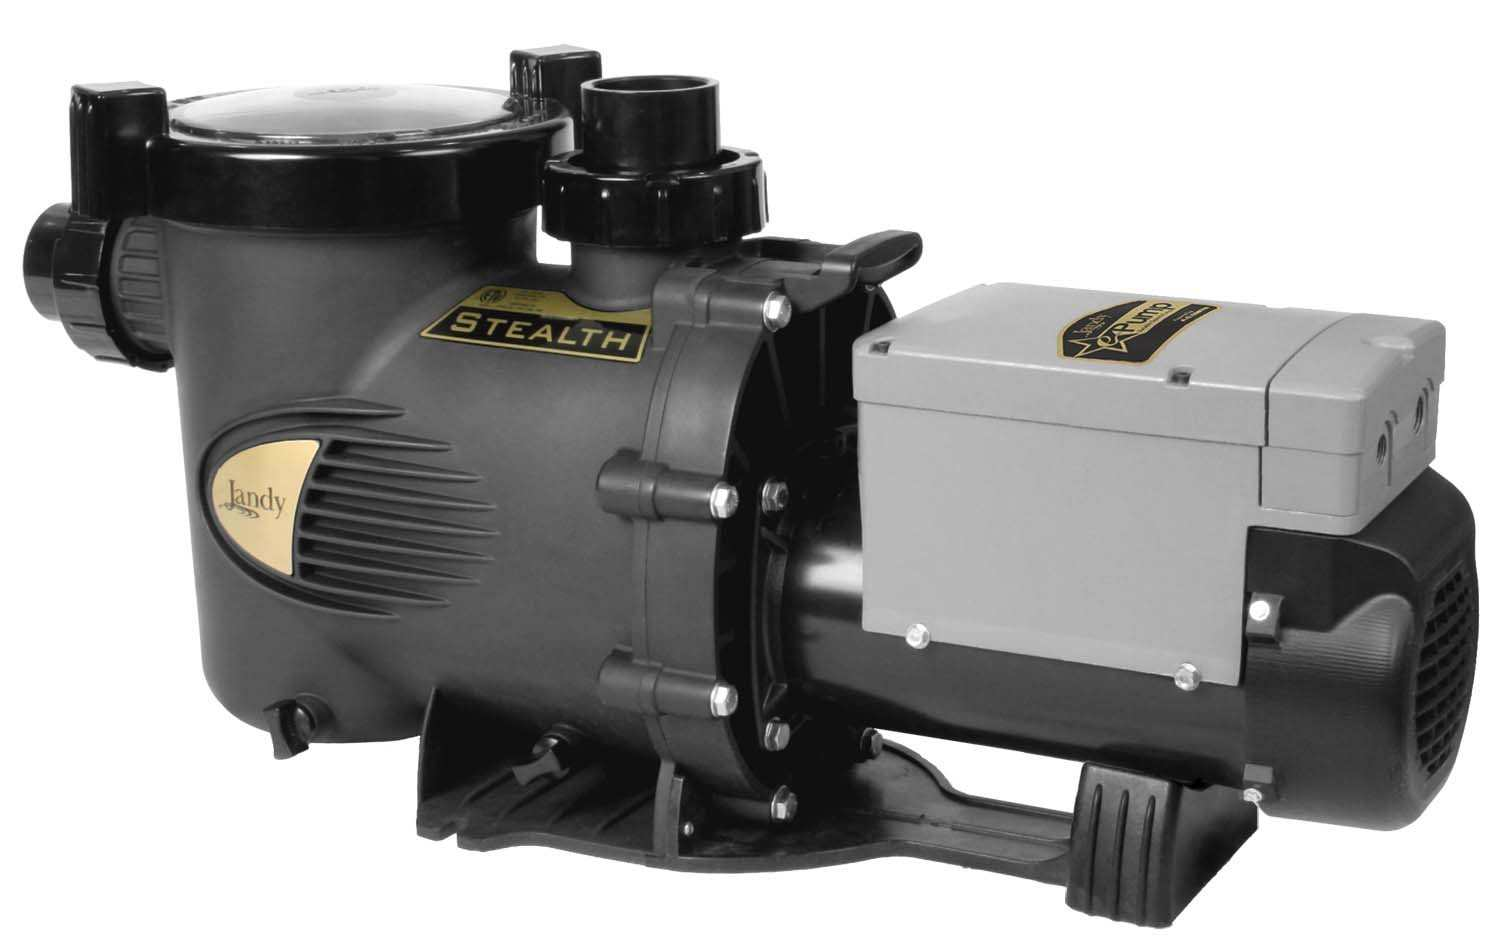 Jandy TLD-10-2070 - Jandy E-Pump Variable 8 Speed 1.5 HP Pool Pump JEP1.5